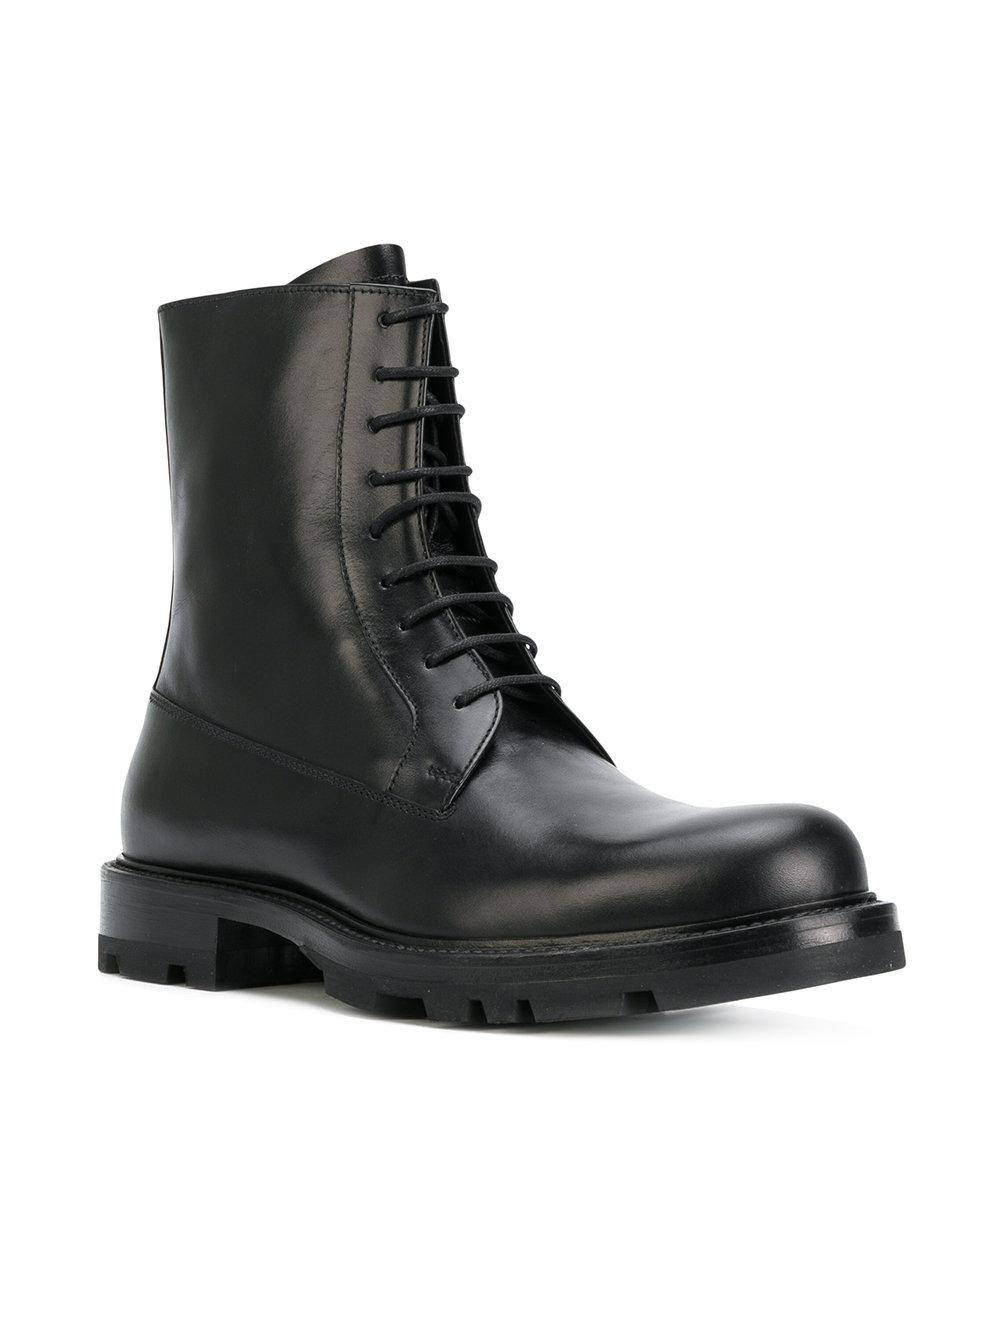 Jil Sander Leather Box Valf Ankle Boots in Black